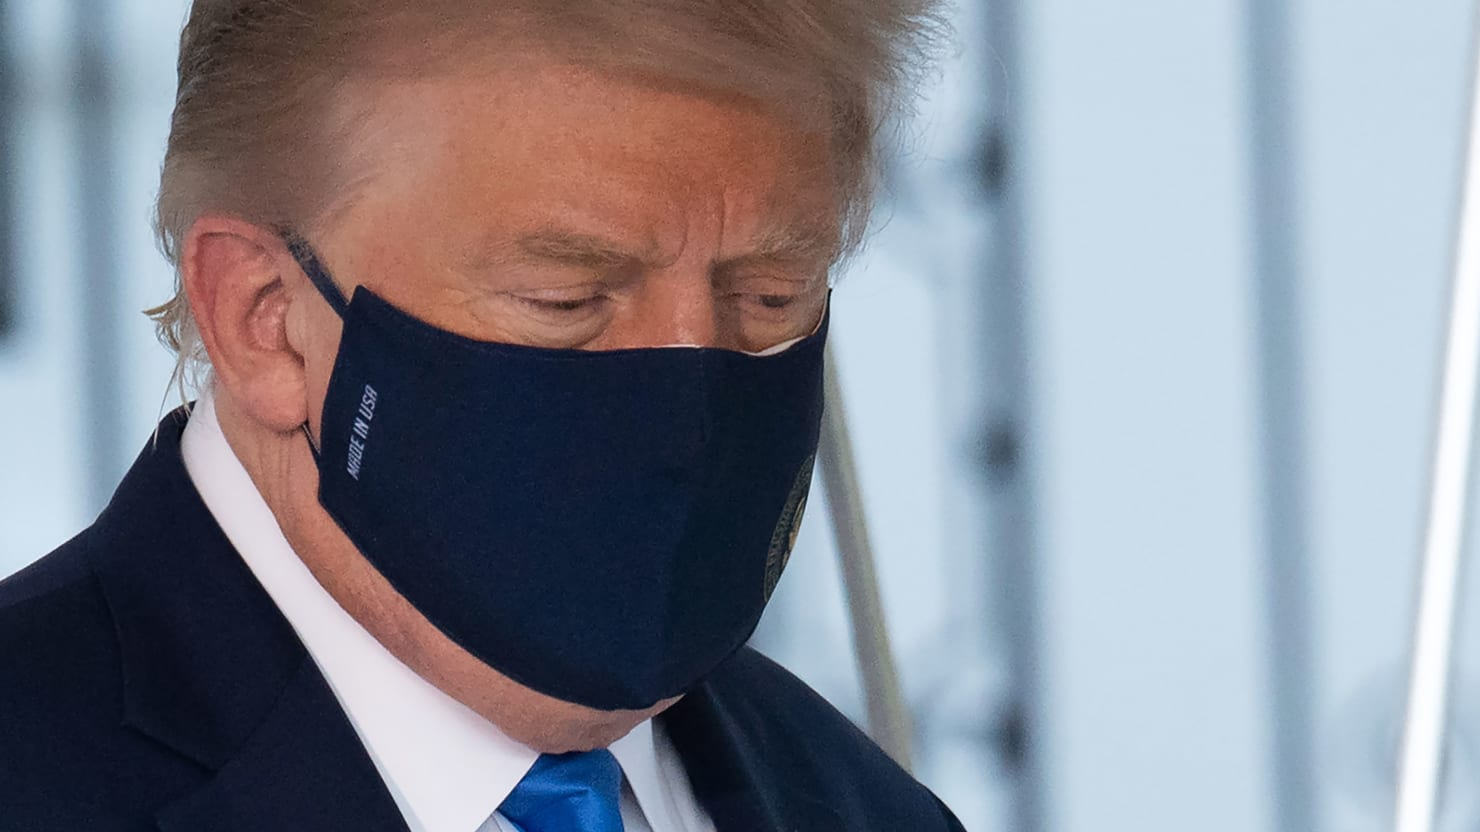 What We Know About the Experimental Drug Trump Took for COVID-19